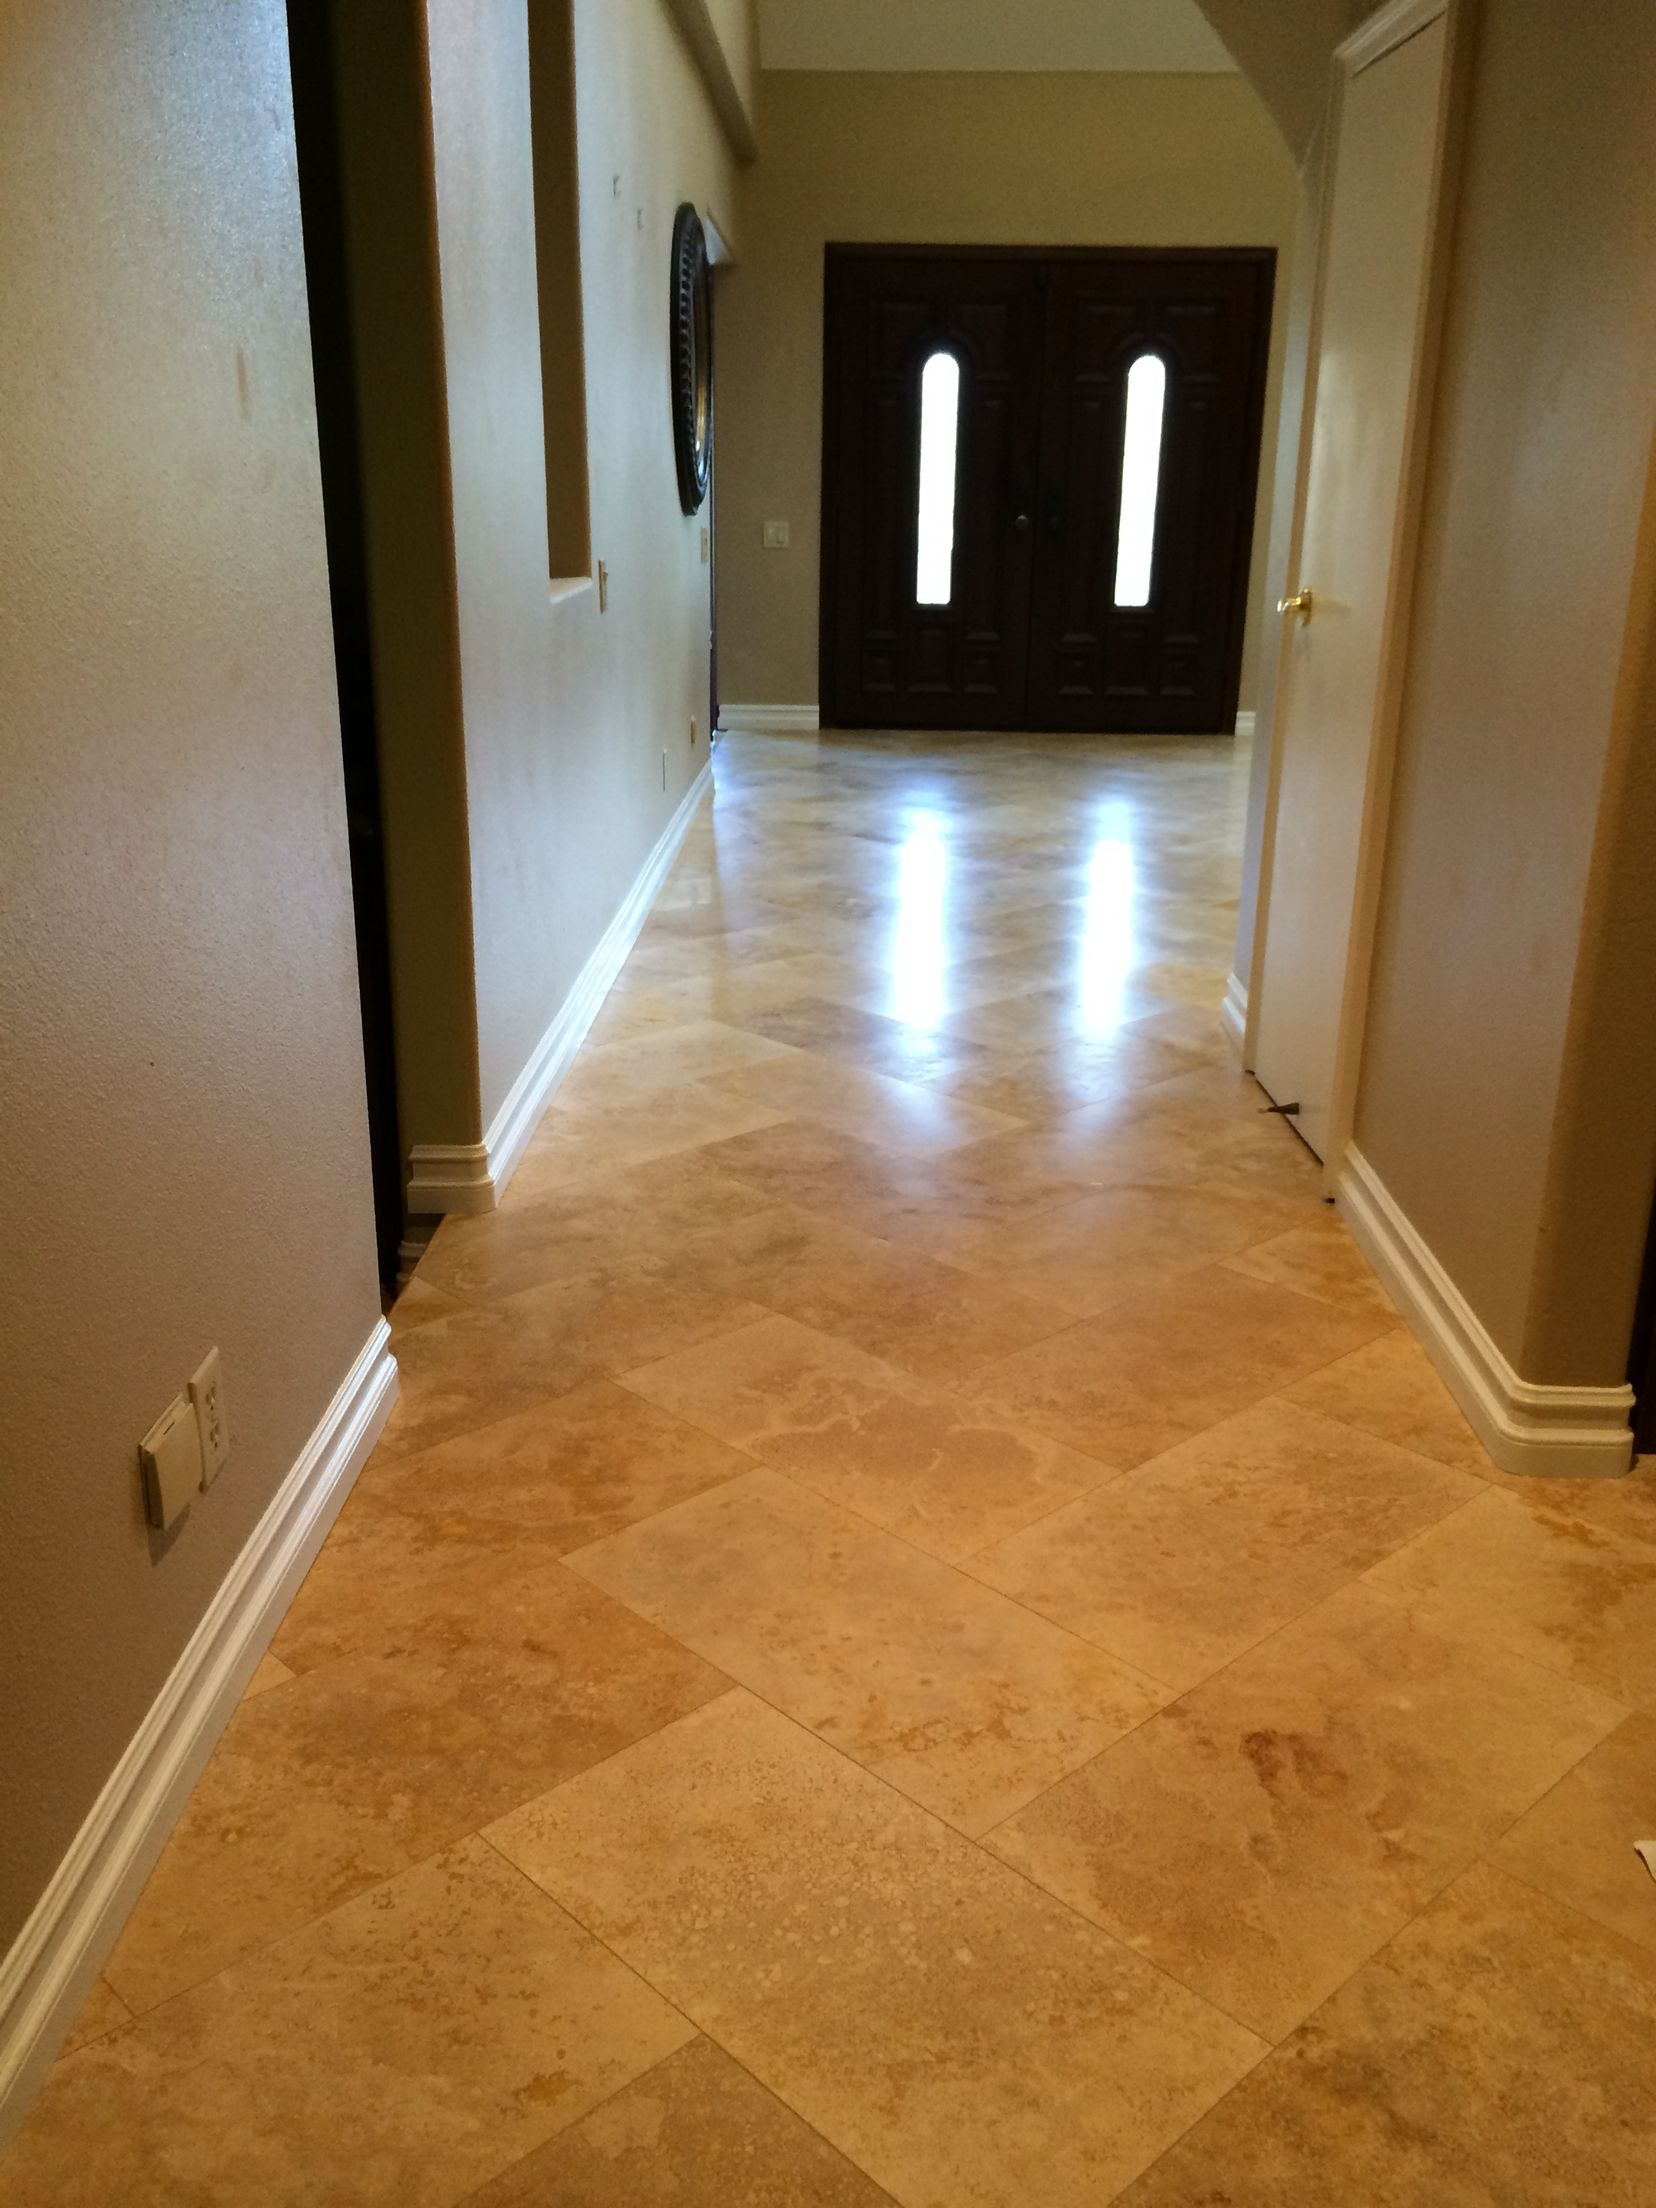 12x24 Travertine In Herringbone Tile Layout Tile Floor Flooring